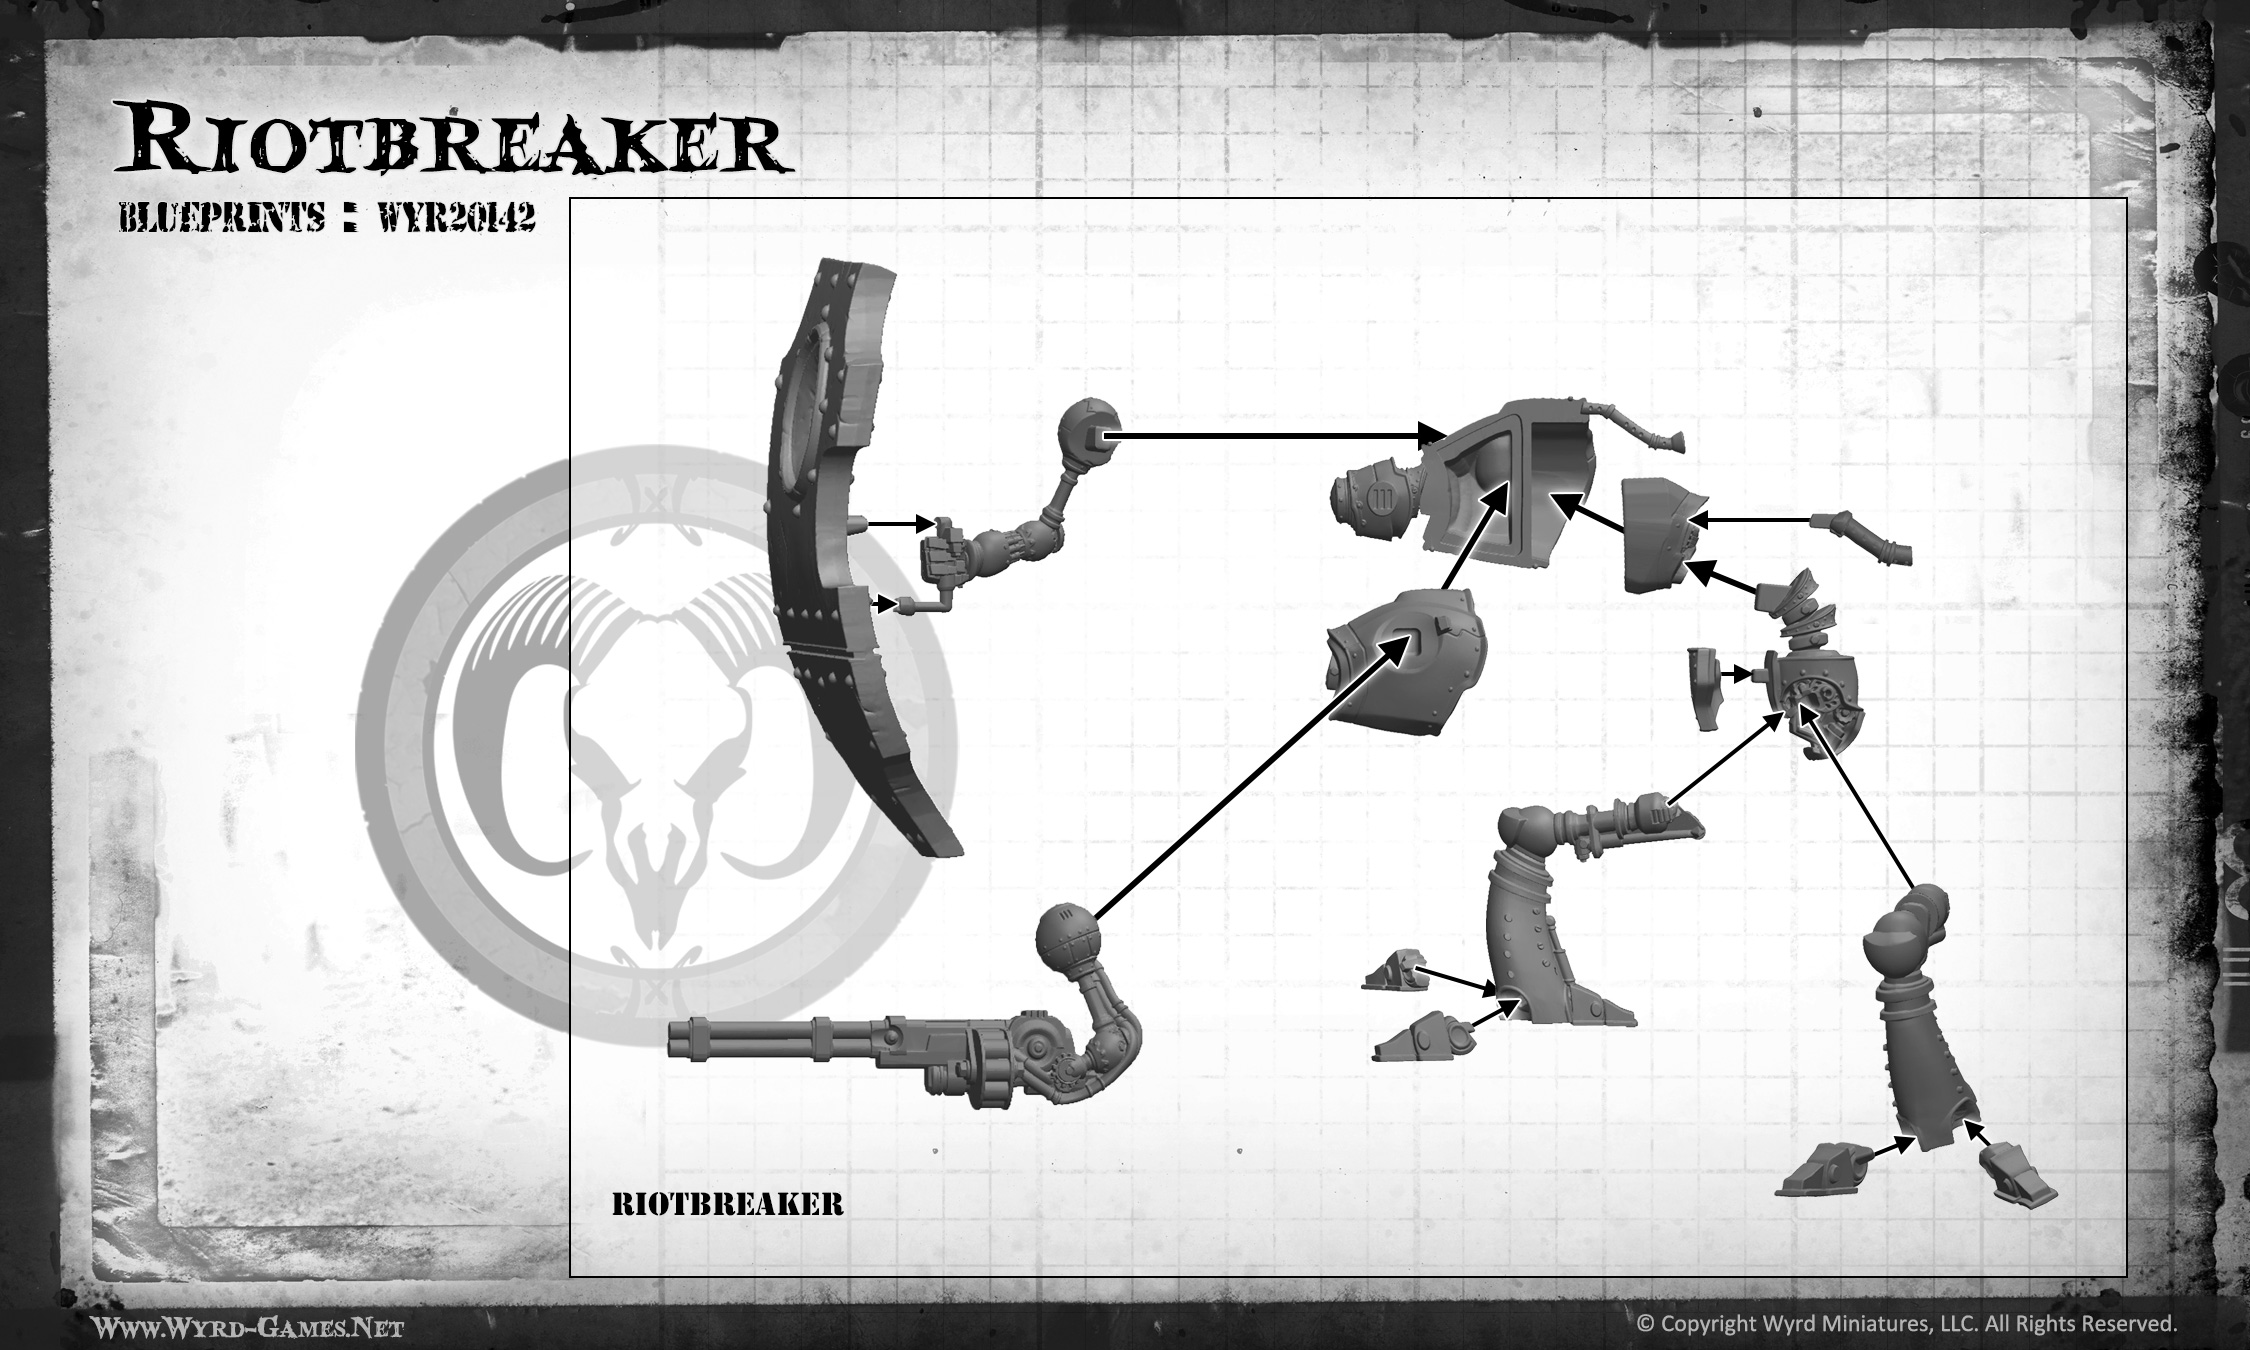 Instruction-WYR20142-Riotbreaker.jpg